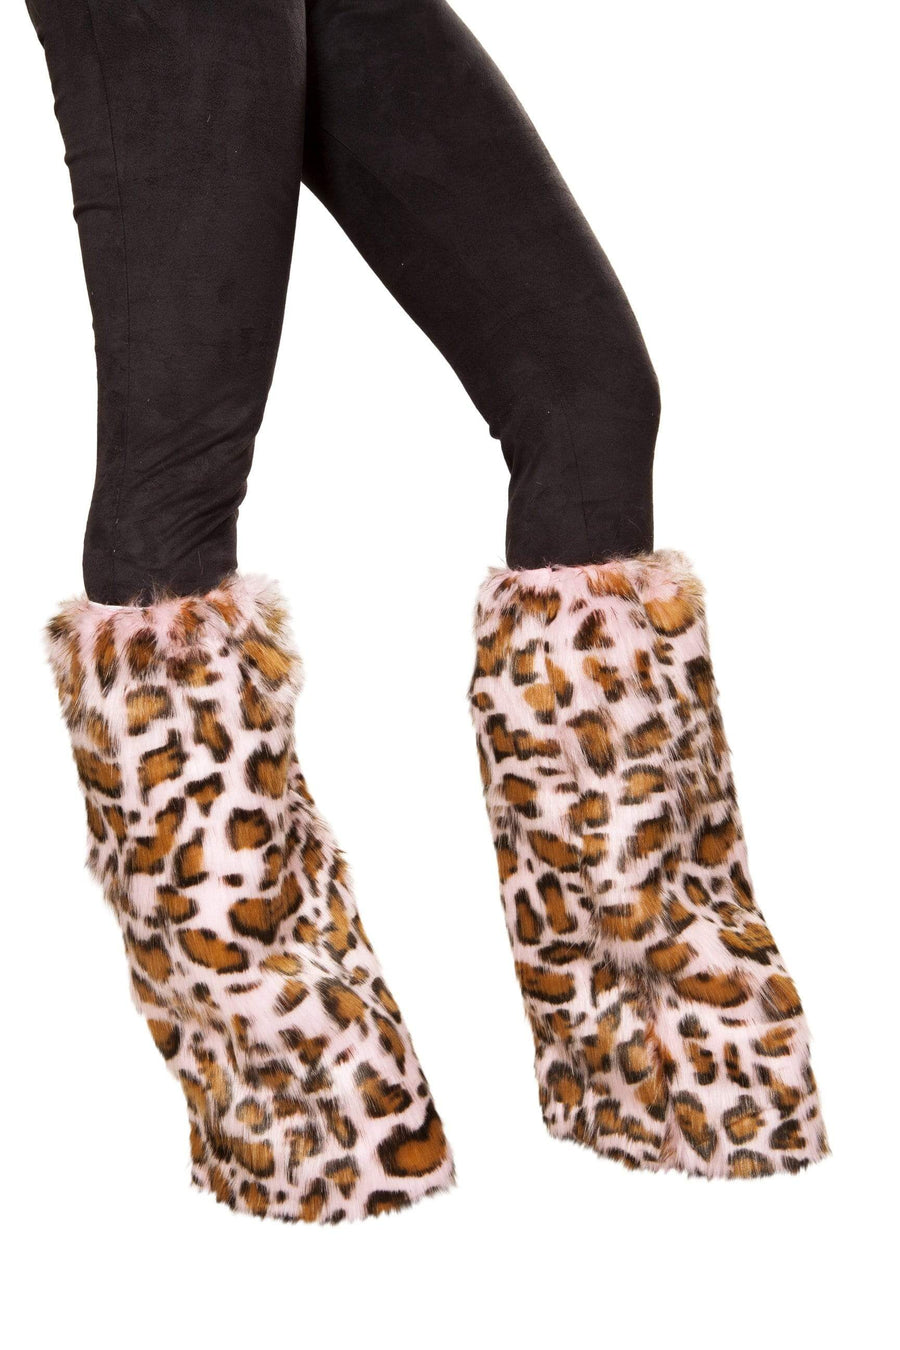 Roma One Size / printed Pink Leopard Leg Warmers SHC-4889-S-R Apparel & Accessories > Costumes & Accessories > Costumes